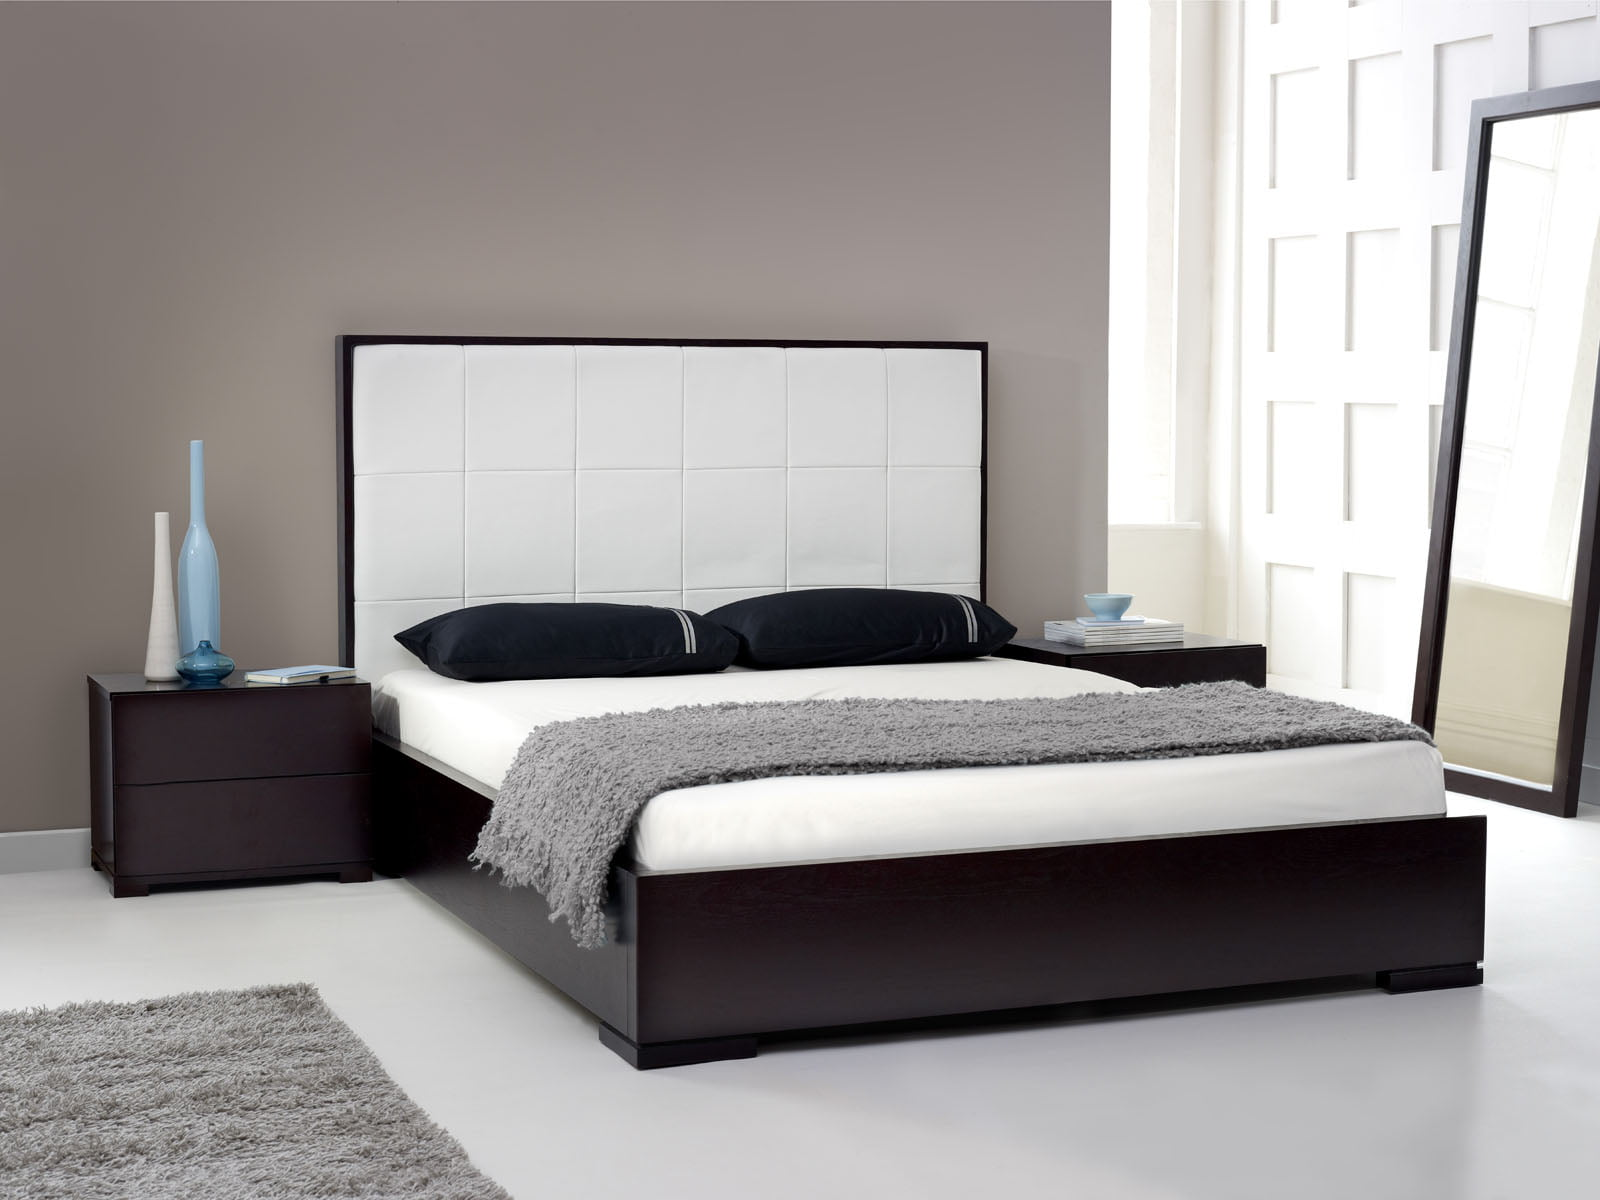 Modern bedroom furniture dublin - Bespoke Black Bed